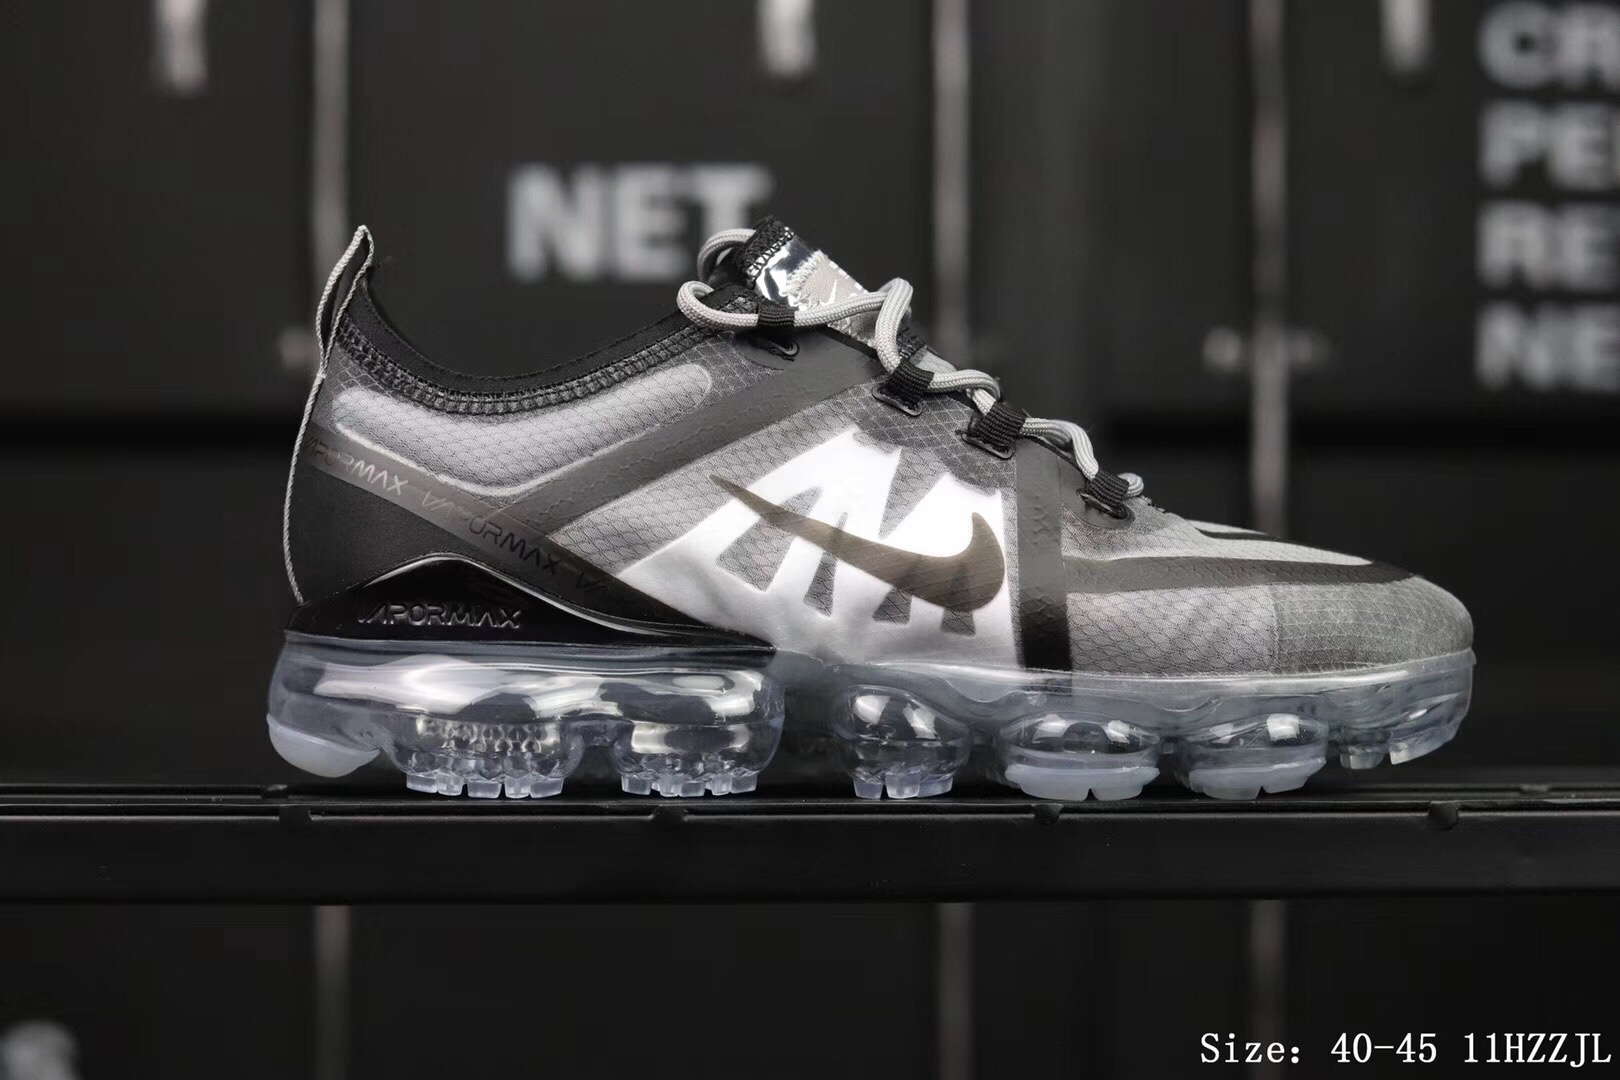 Nike Air Vapormax 2019 Mesh Grey Black Shoes For Women